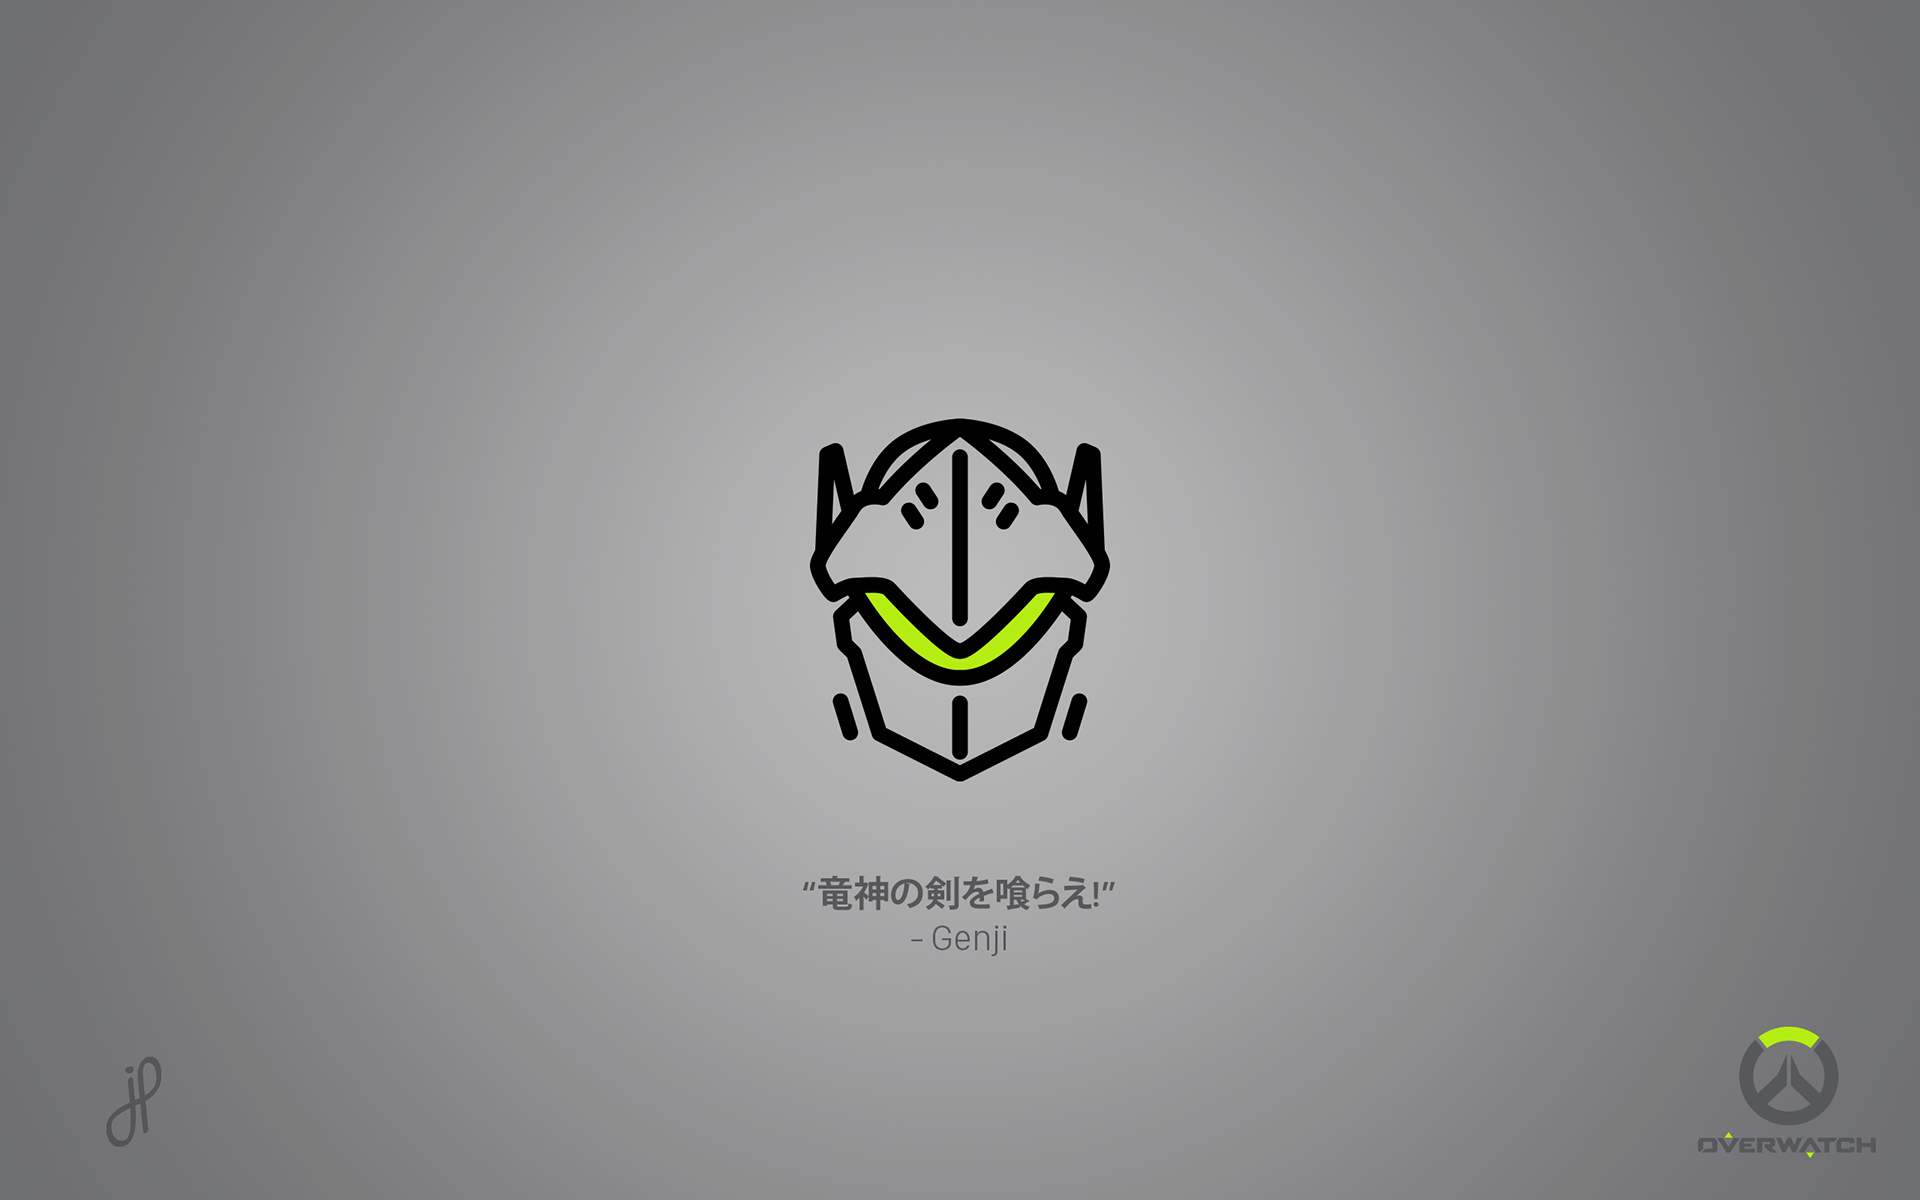 Overwatch Simplistic Backgrounds on Behance